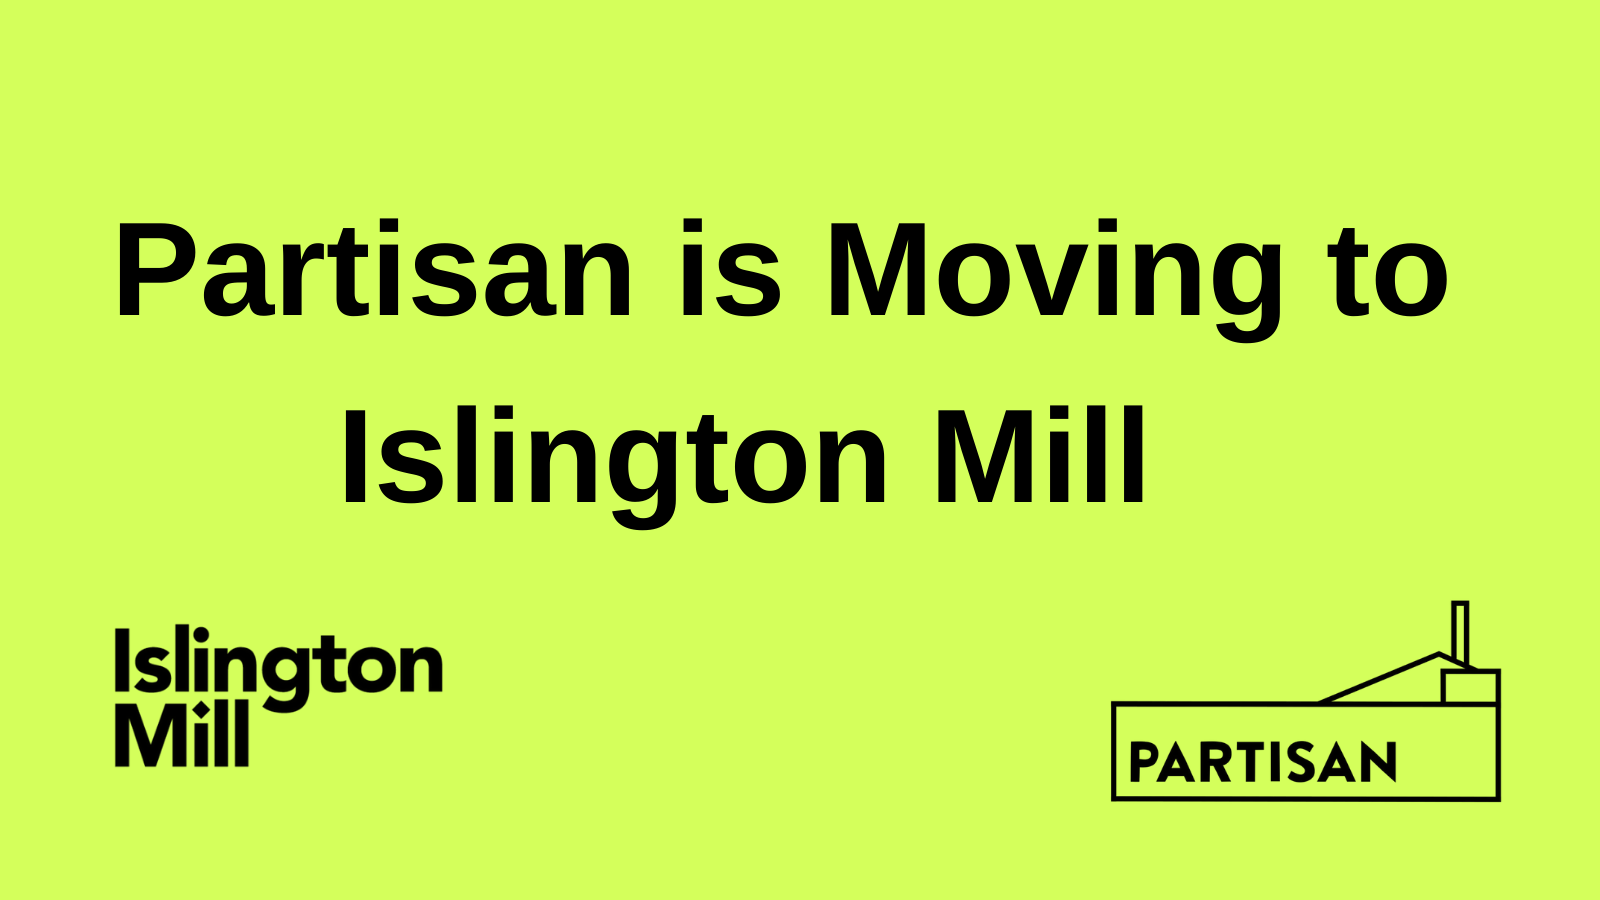 Partisan has moved to Salford